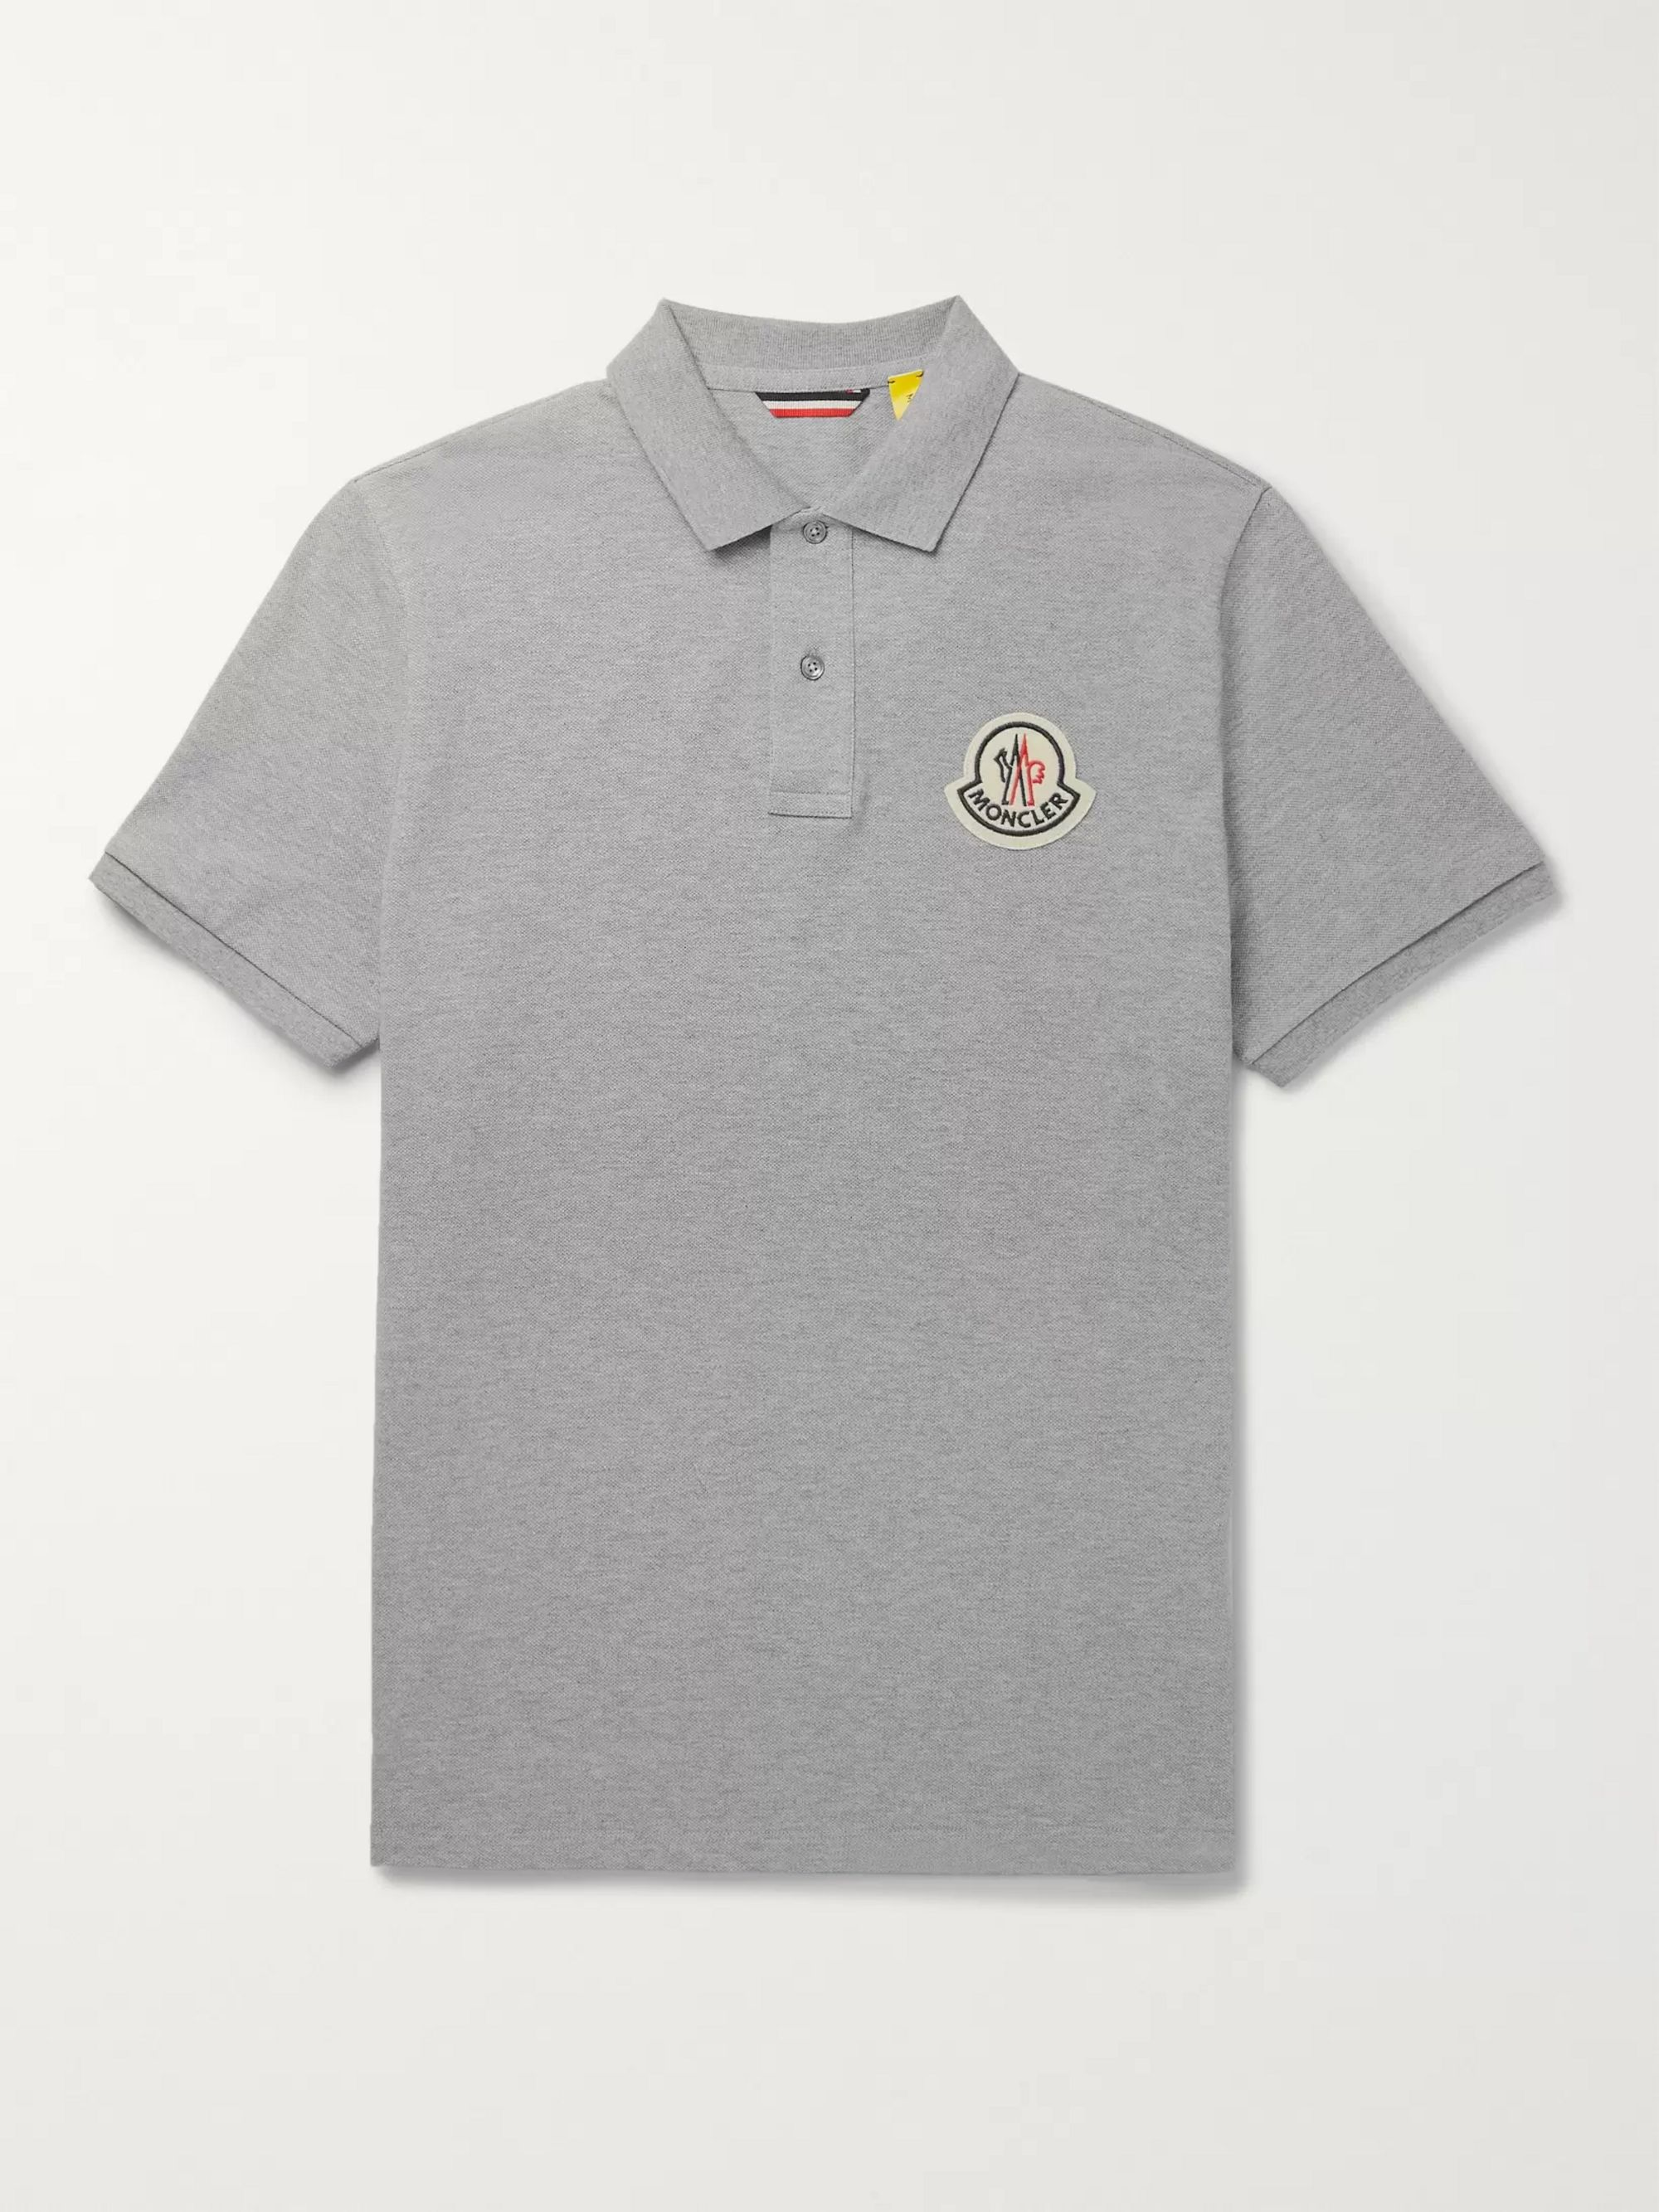 2 Moncler 1952 Logo Appliquéd Cotton Piqué Polo Shirt